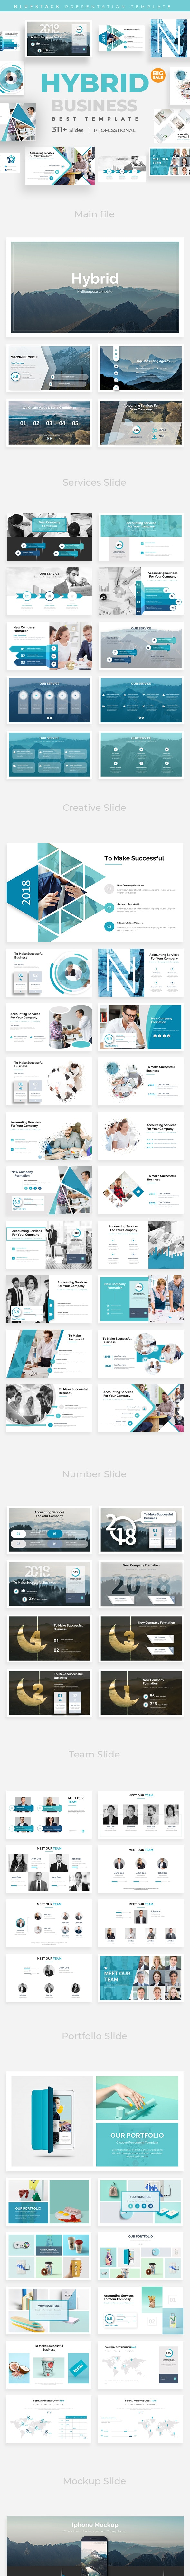 Hybrid Pitch Deck Business Powerpoint Template - Business PowerPoint Templates